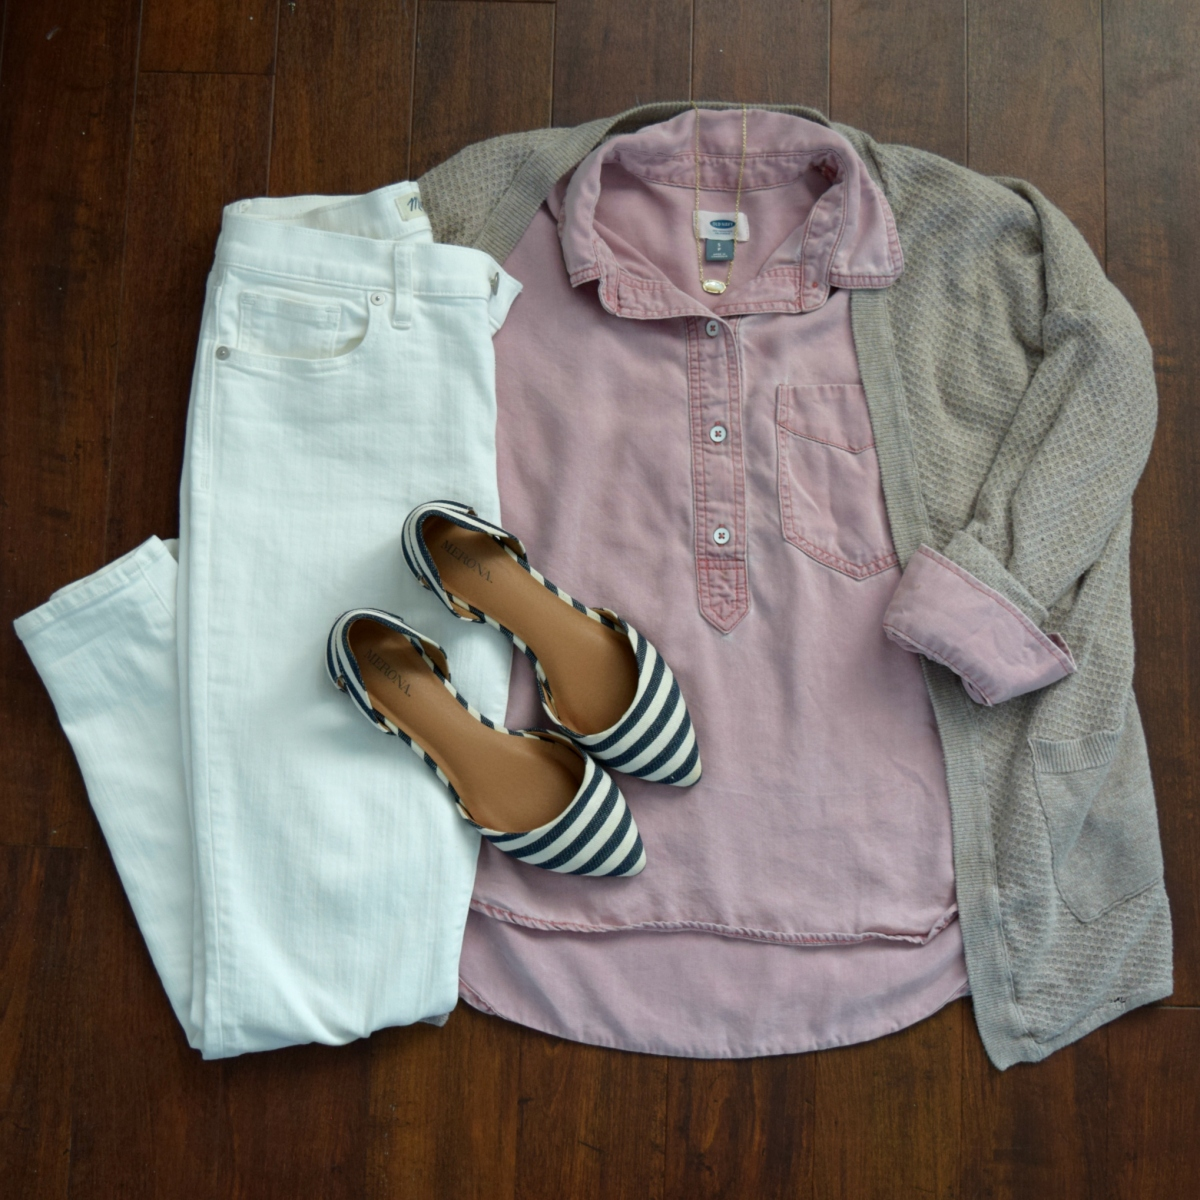 pink chambray, white skinny jeans, and navy stripes |www.pearlsandsportsbras.com|